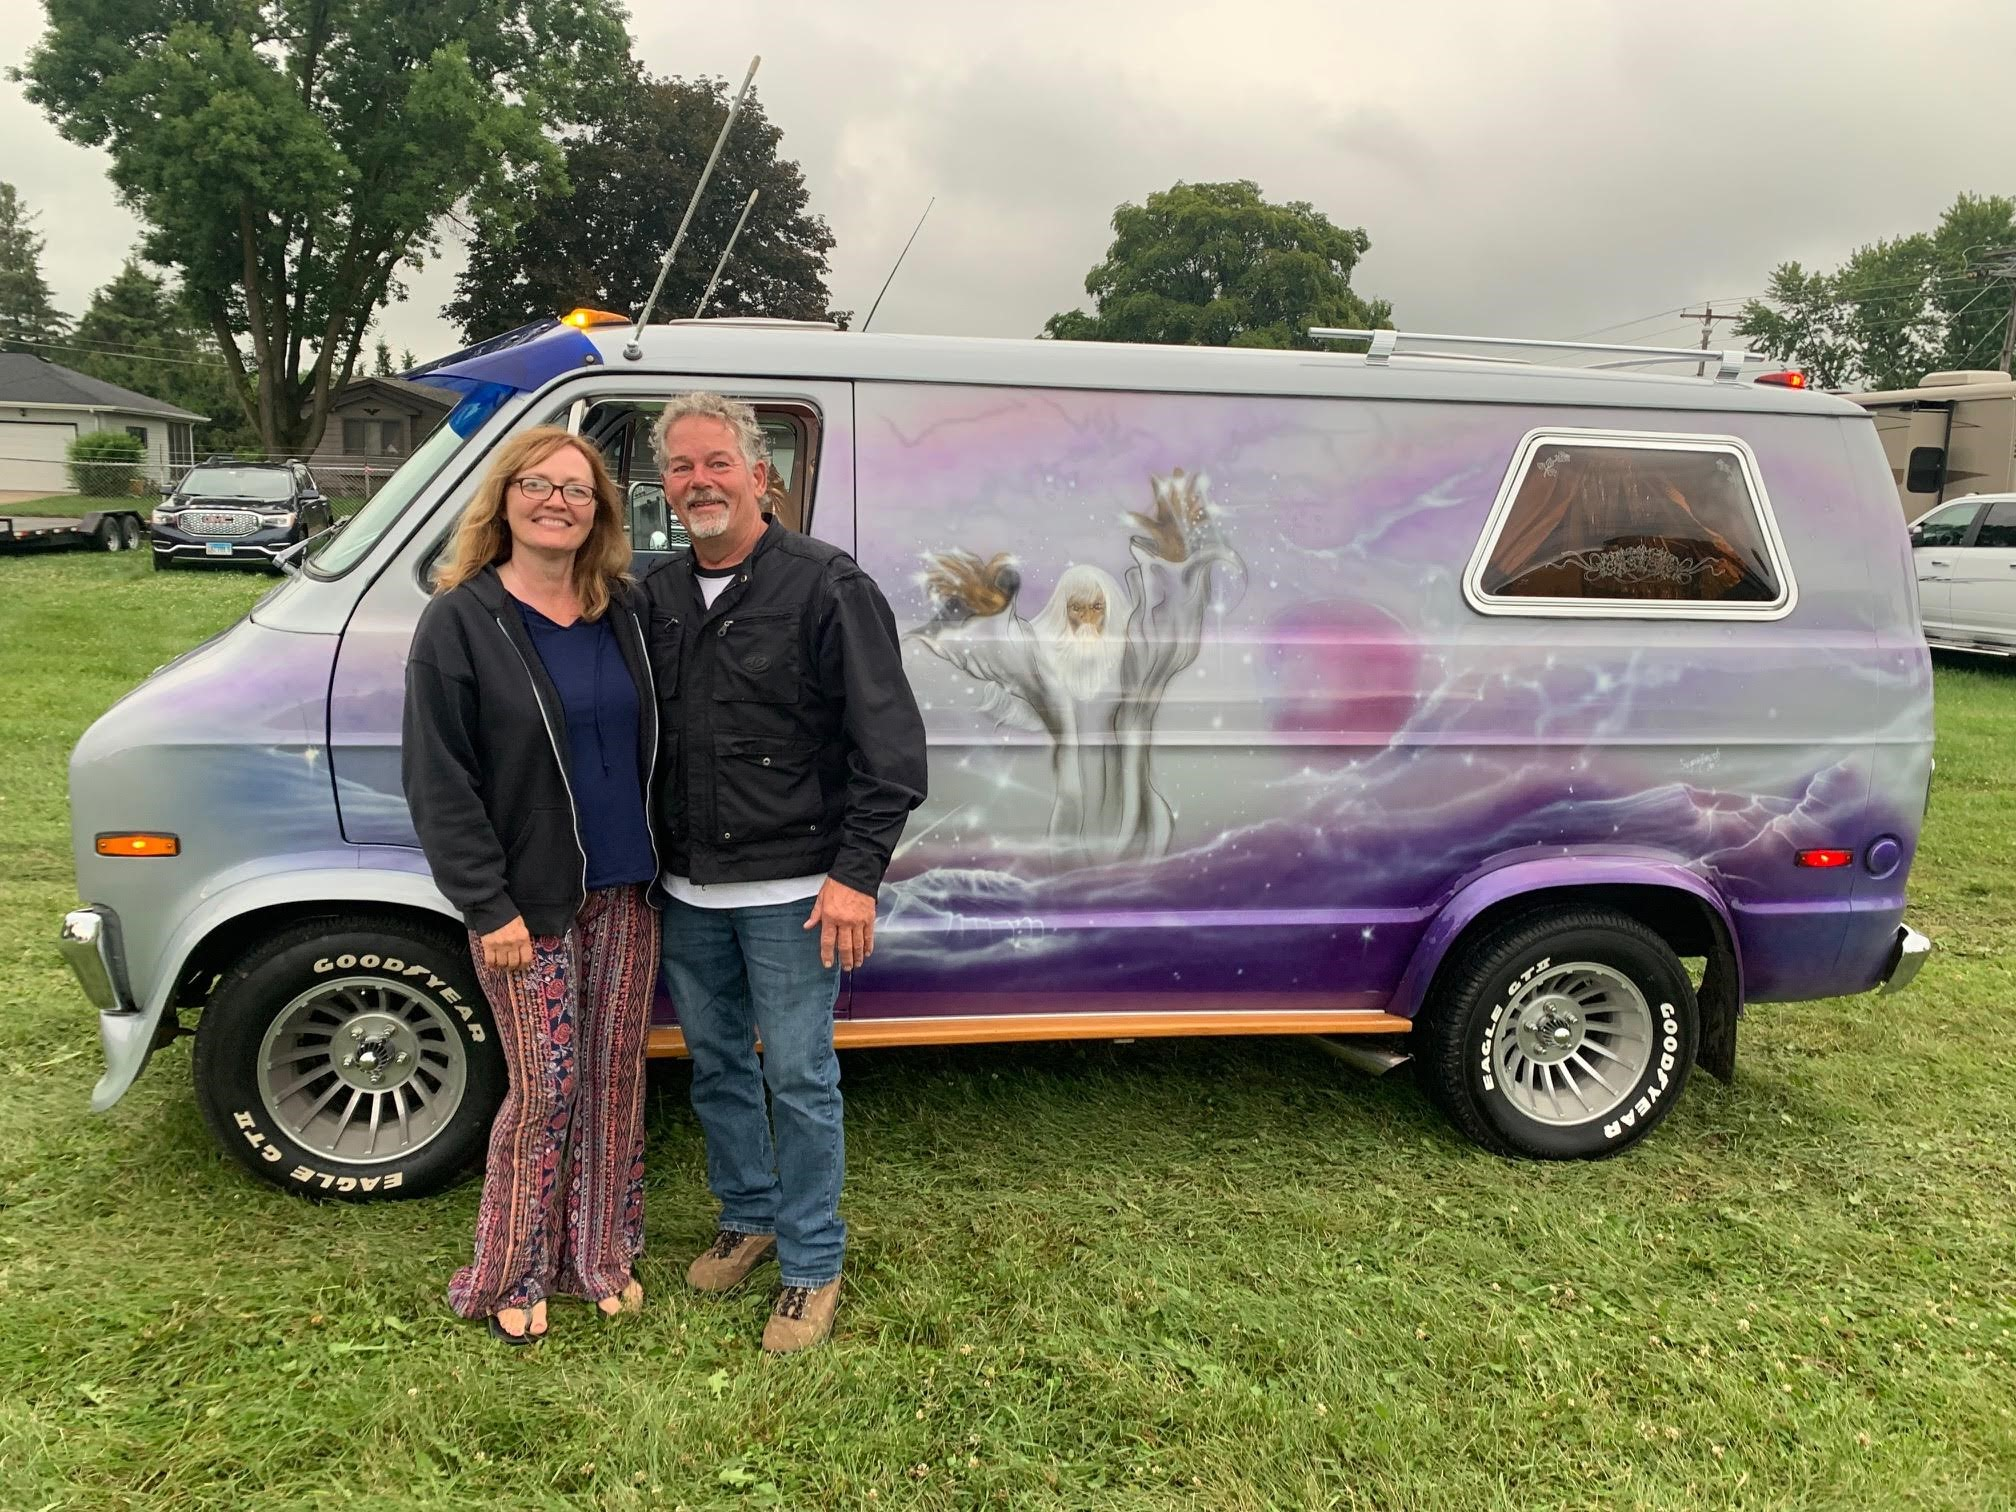 Tom and Laurie's 1977 Dodge Mistic